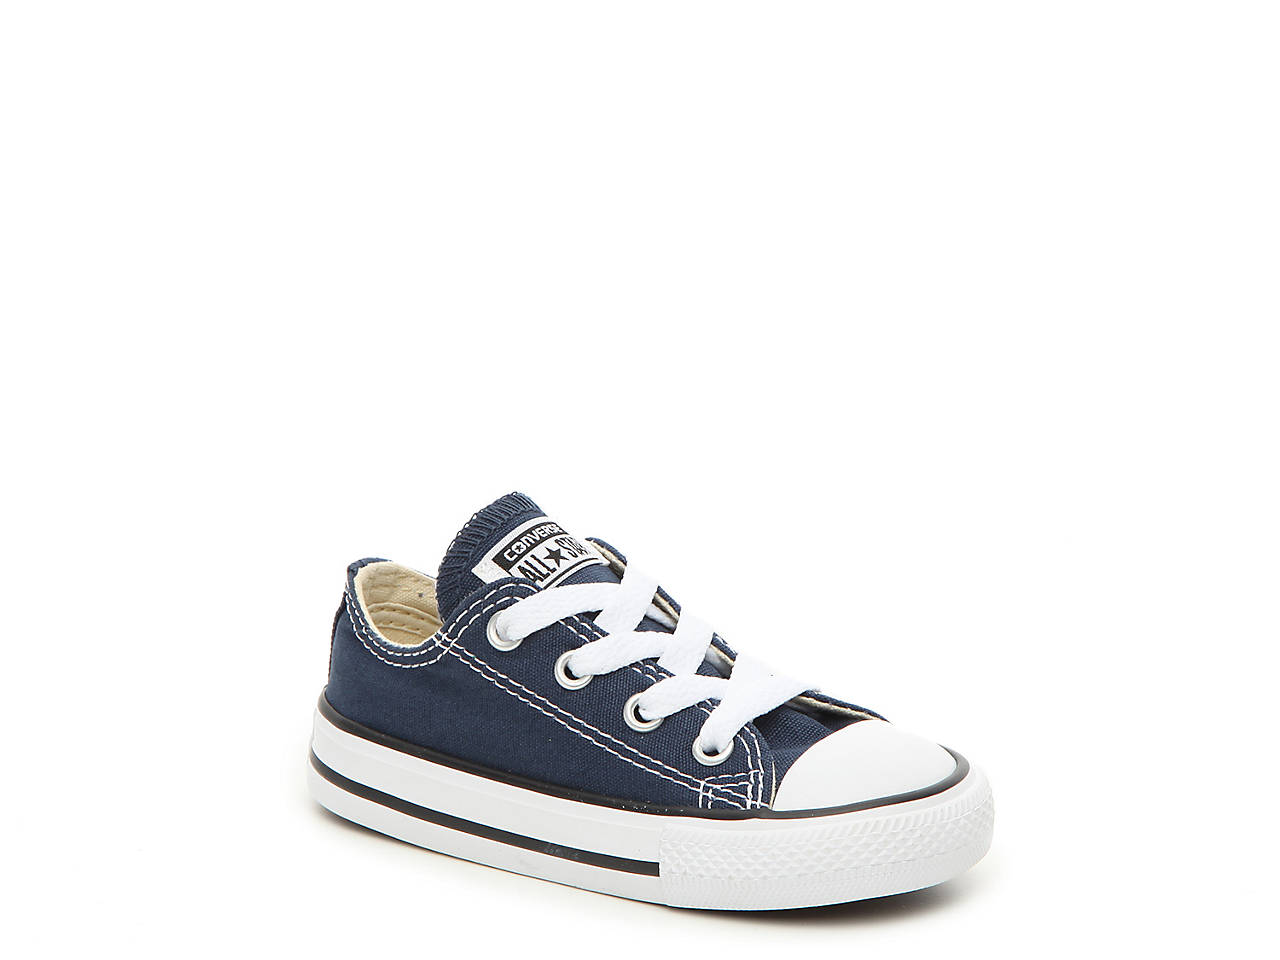 f79795286224 Converse Chuck Taylor All Star Infant   Toddler Sneaker Kids Shoes